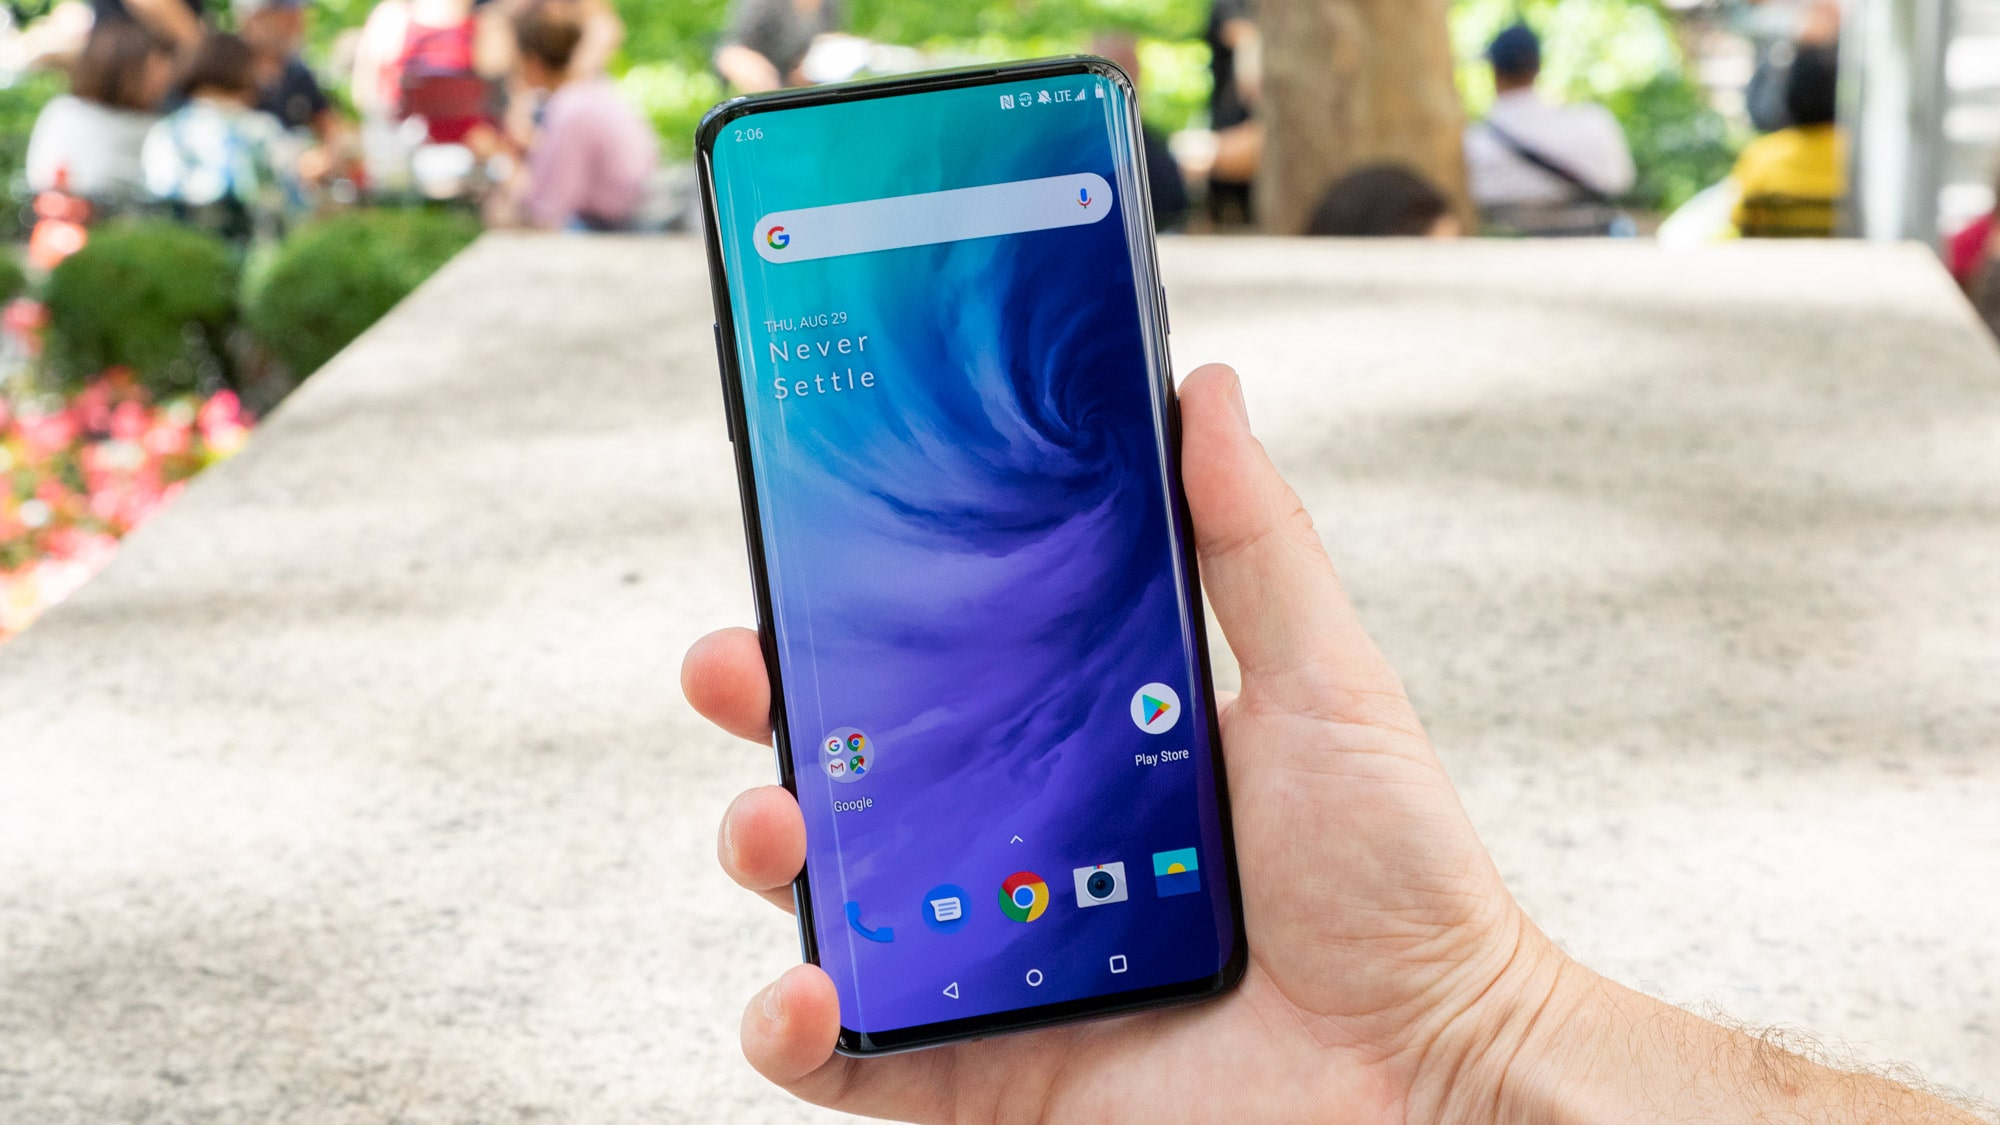 5. OnePlus 7 Pro 5G – One of the Best 5G Phones in Terms of Value